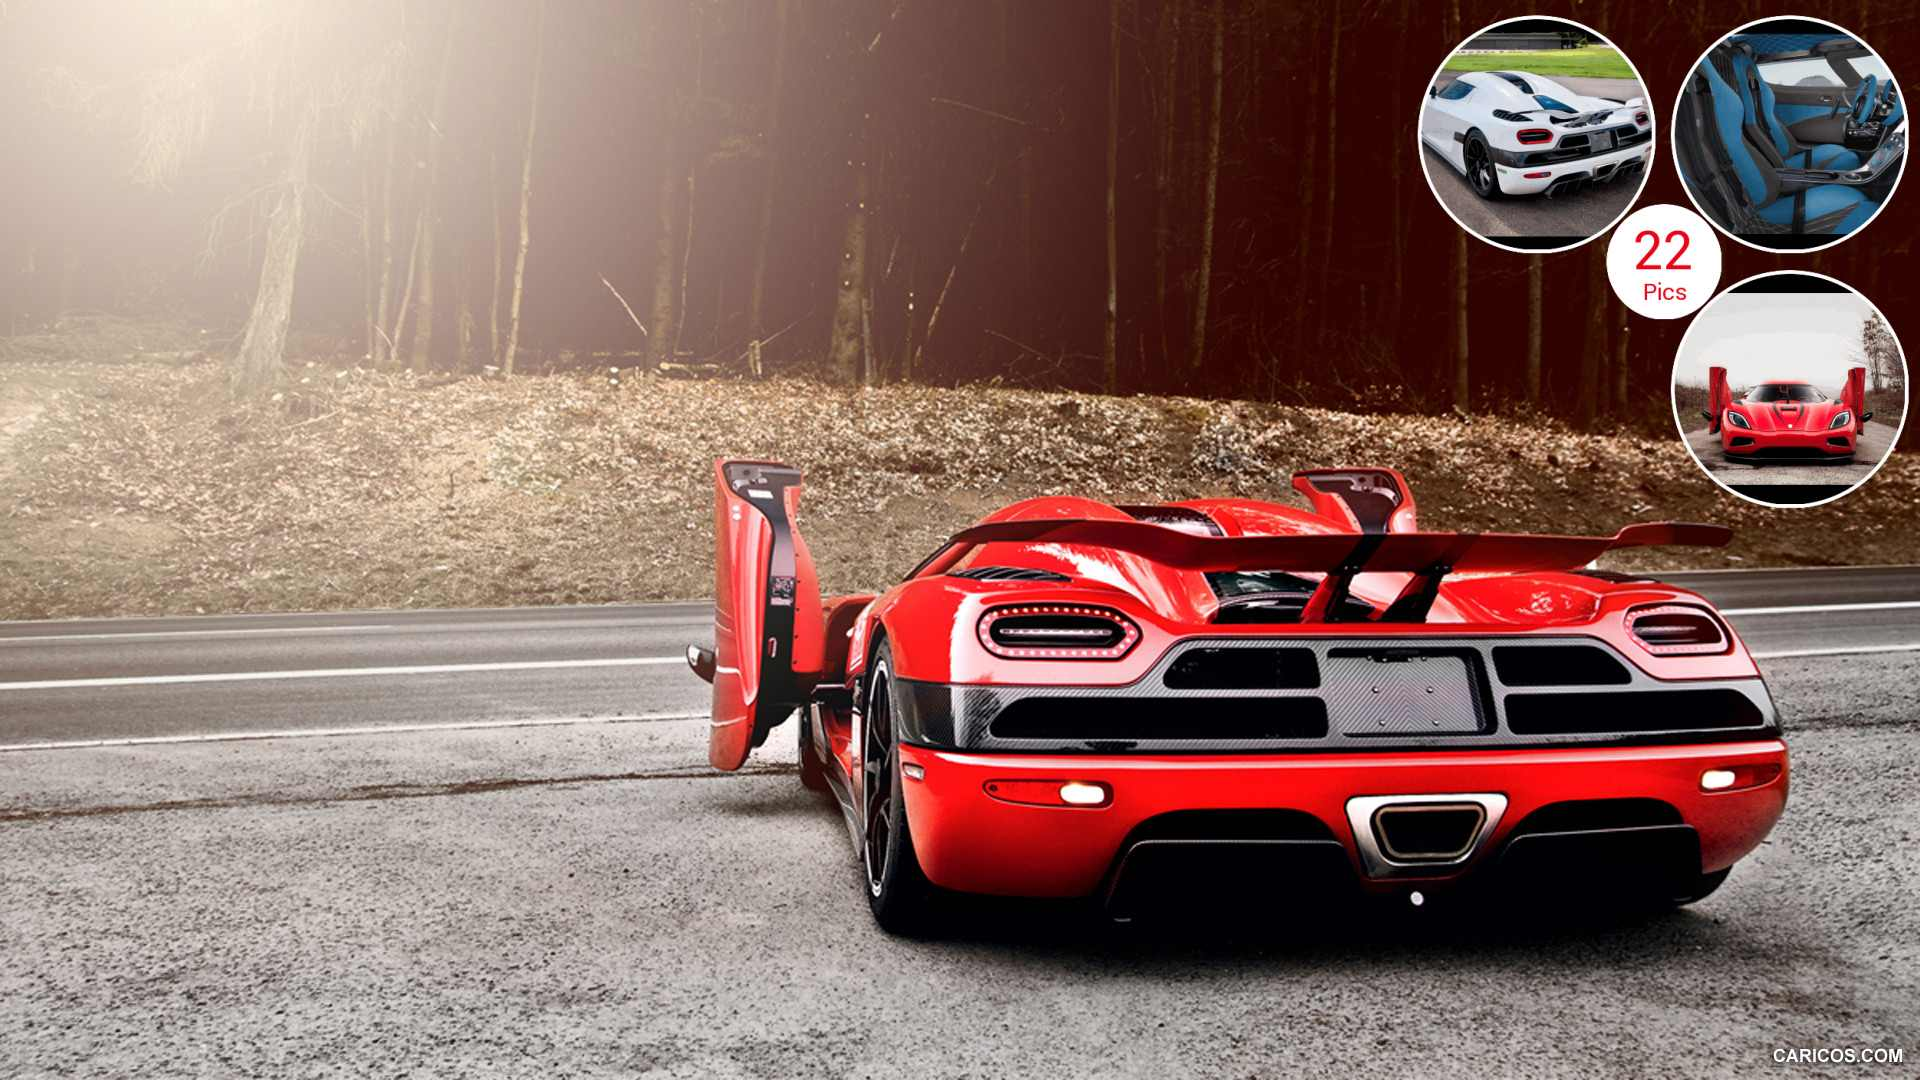 2013 Koenigsegg Agera R - Door Open - Rear | HD Wallpaper #11